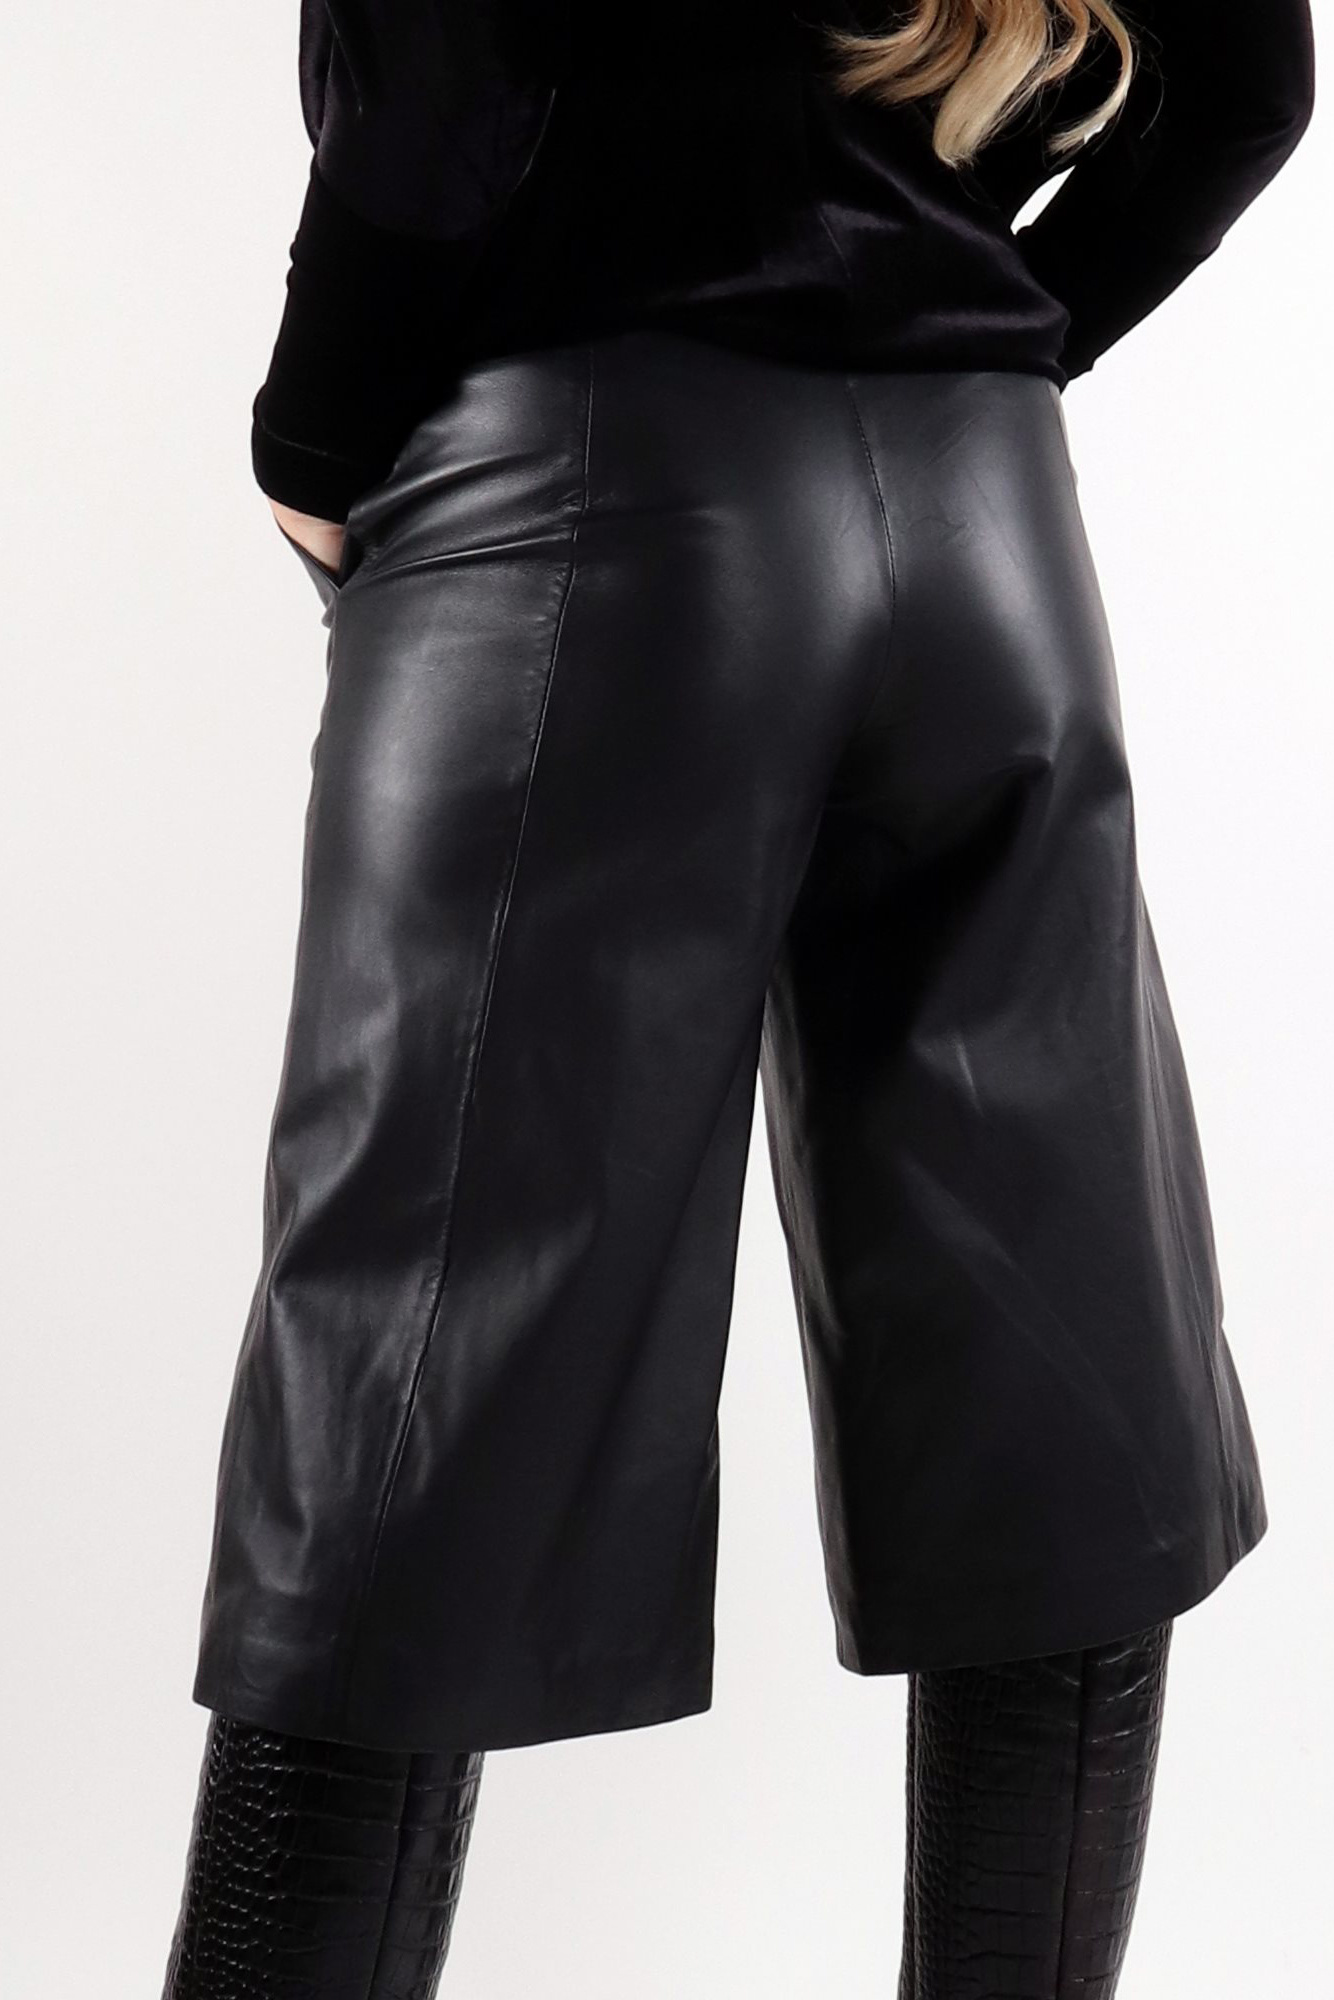 Palma Leather Culotte - Black-2